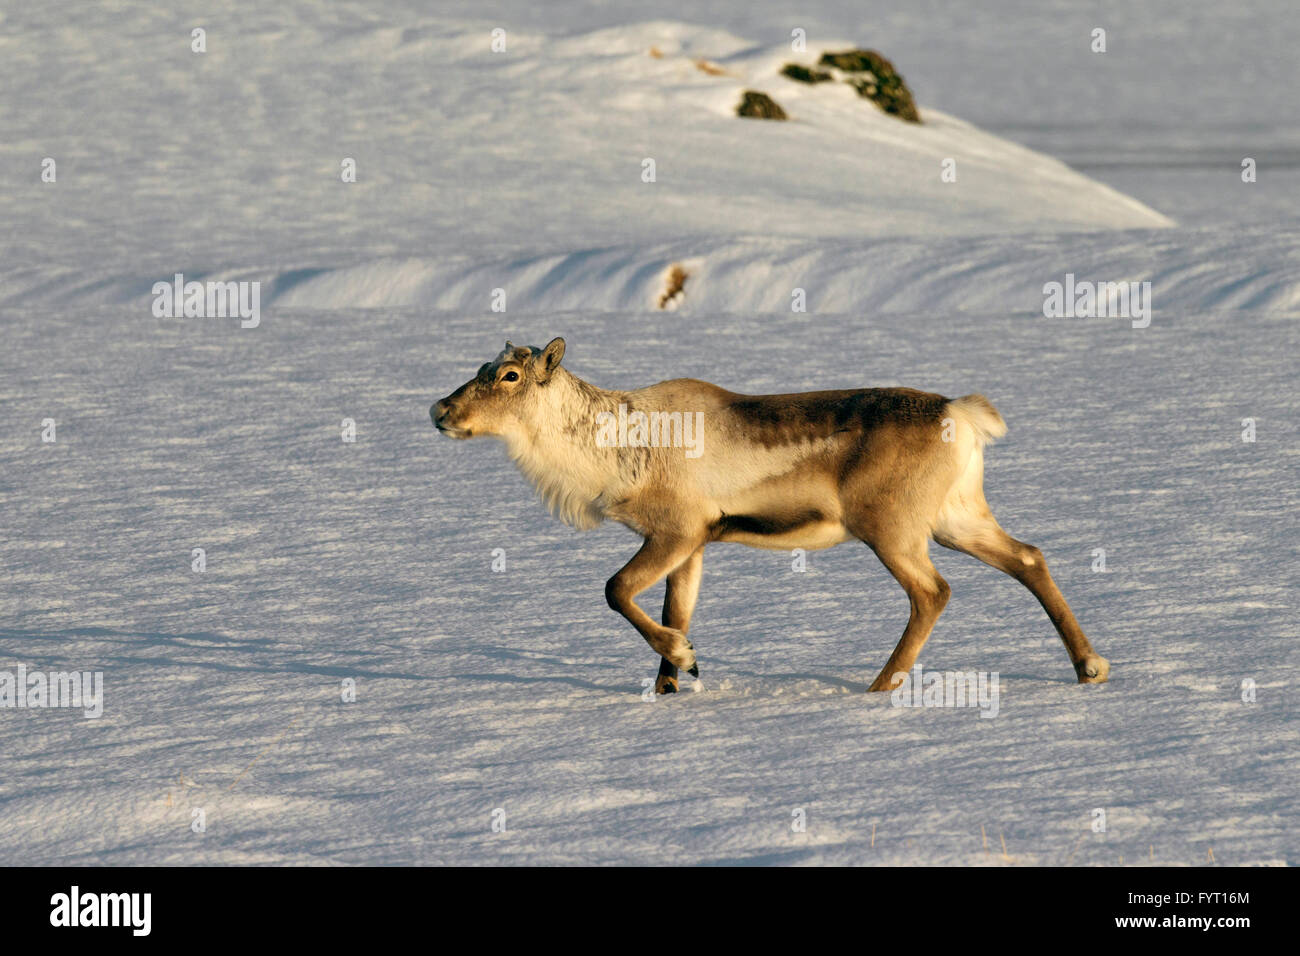 Reindeer (Rangifer tarandus) without antlers foraging in snow covered winter landscape, Iceland - Stock Image